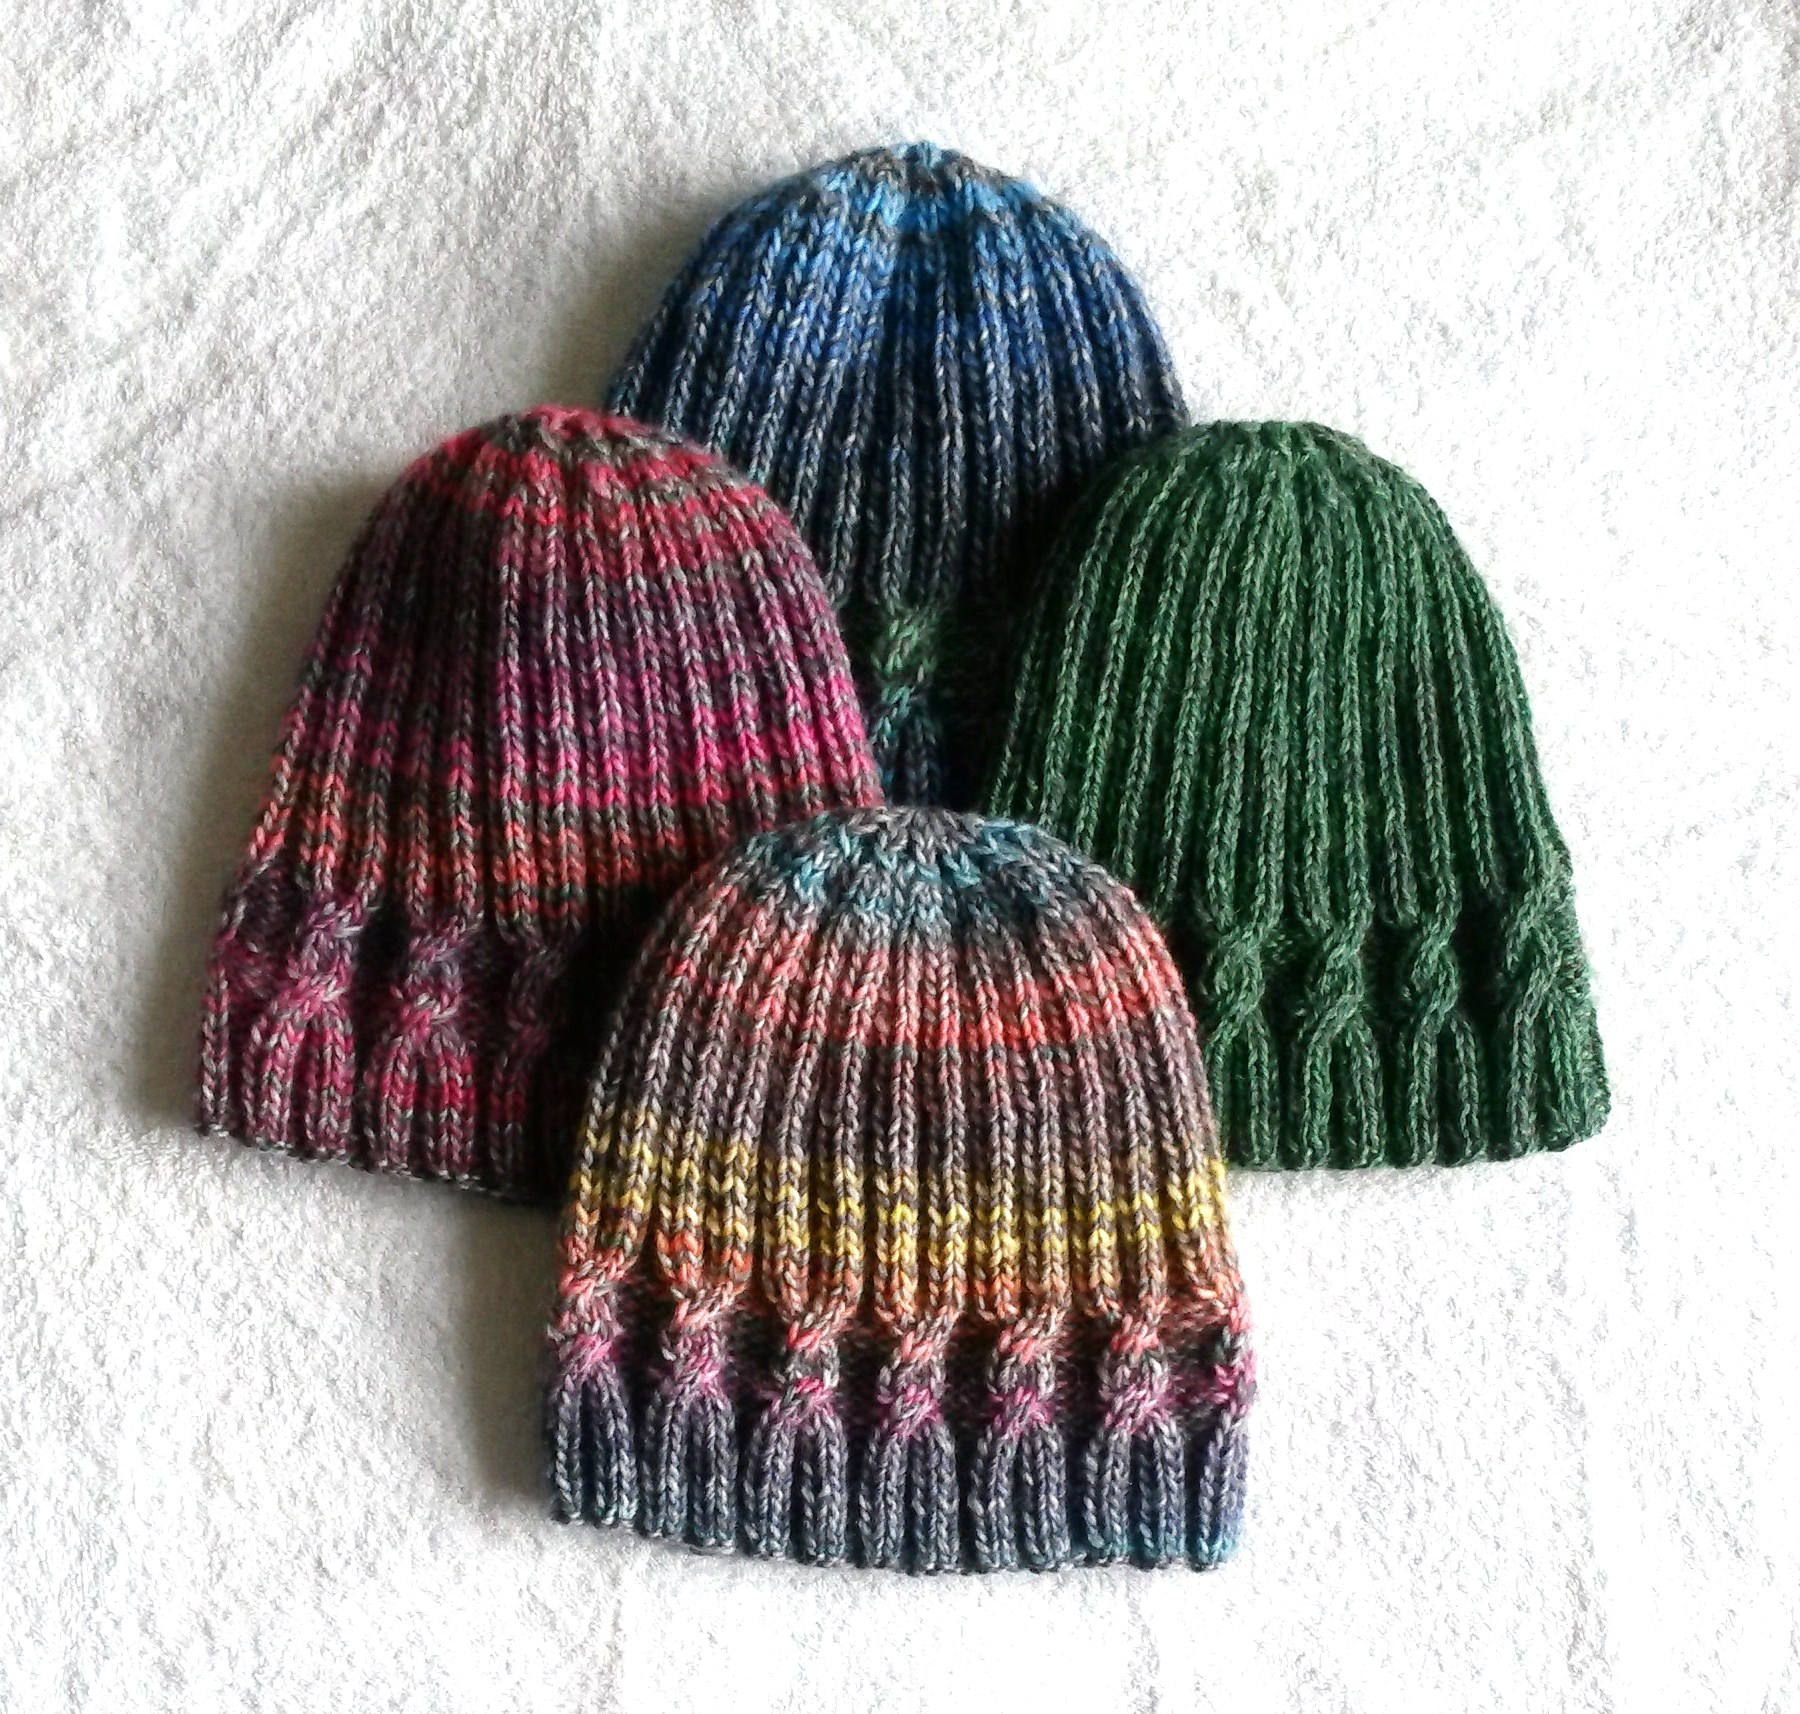 Knitting Pattern Instant Download Pdf Beanie Hat Pattern Cable Knit Hat Pattern Aran Hat Pattern Simple Cable Beanie Unisex Design Cable Knit Hat Pattern Hat Knitting Patterns Knitted Hats